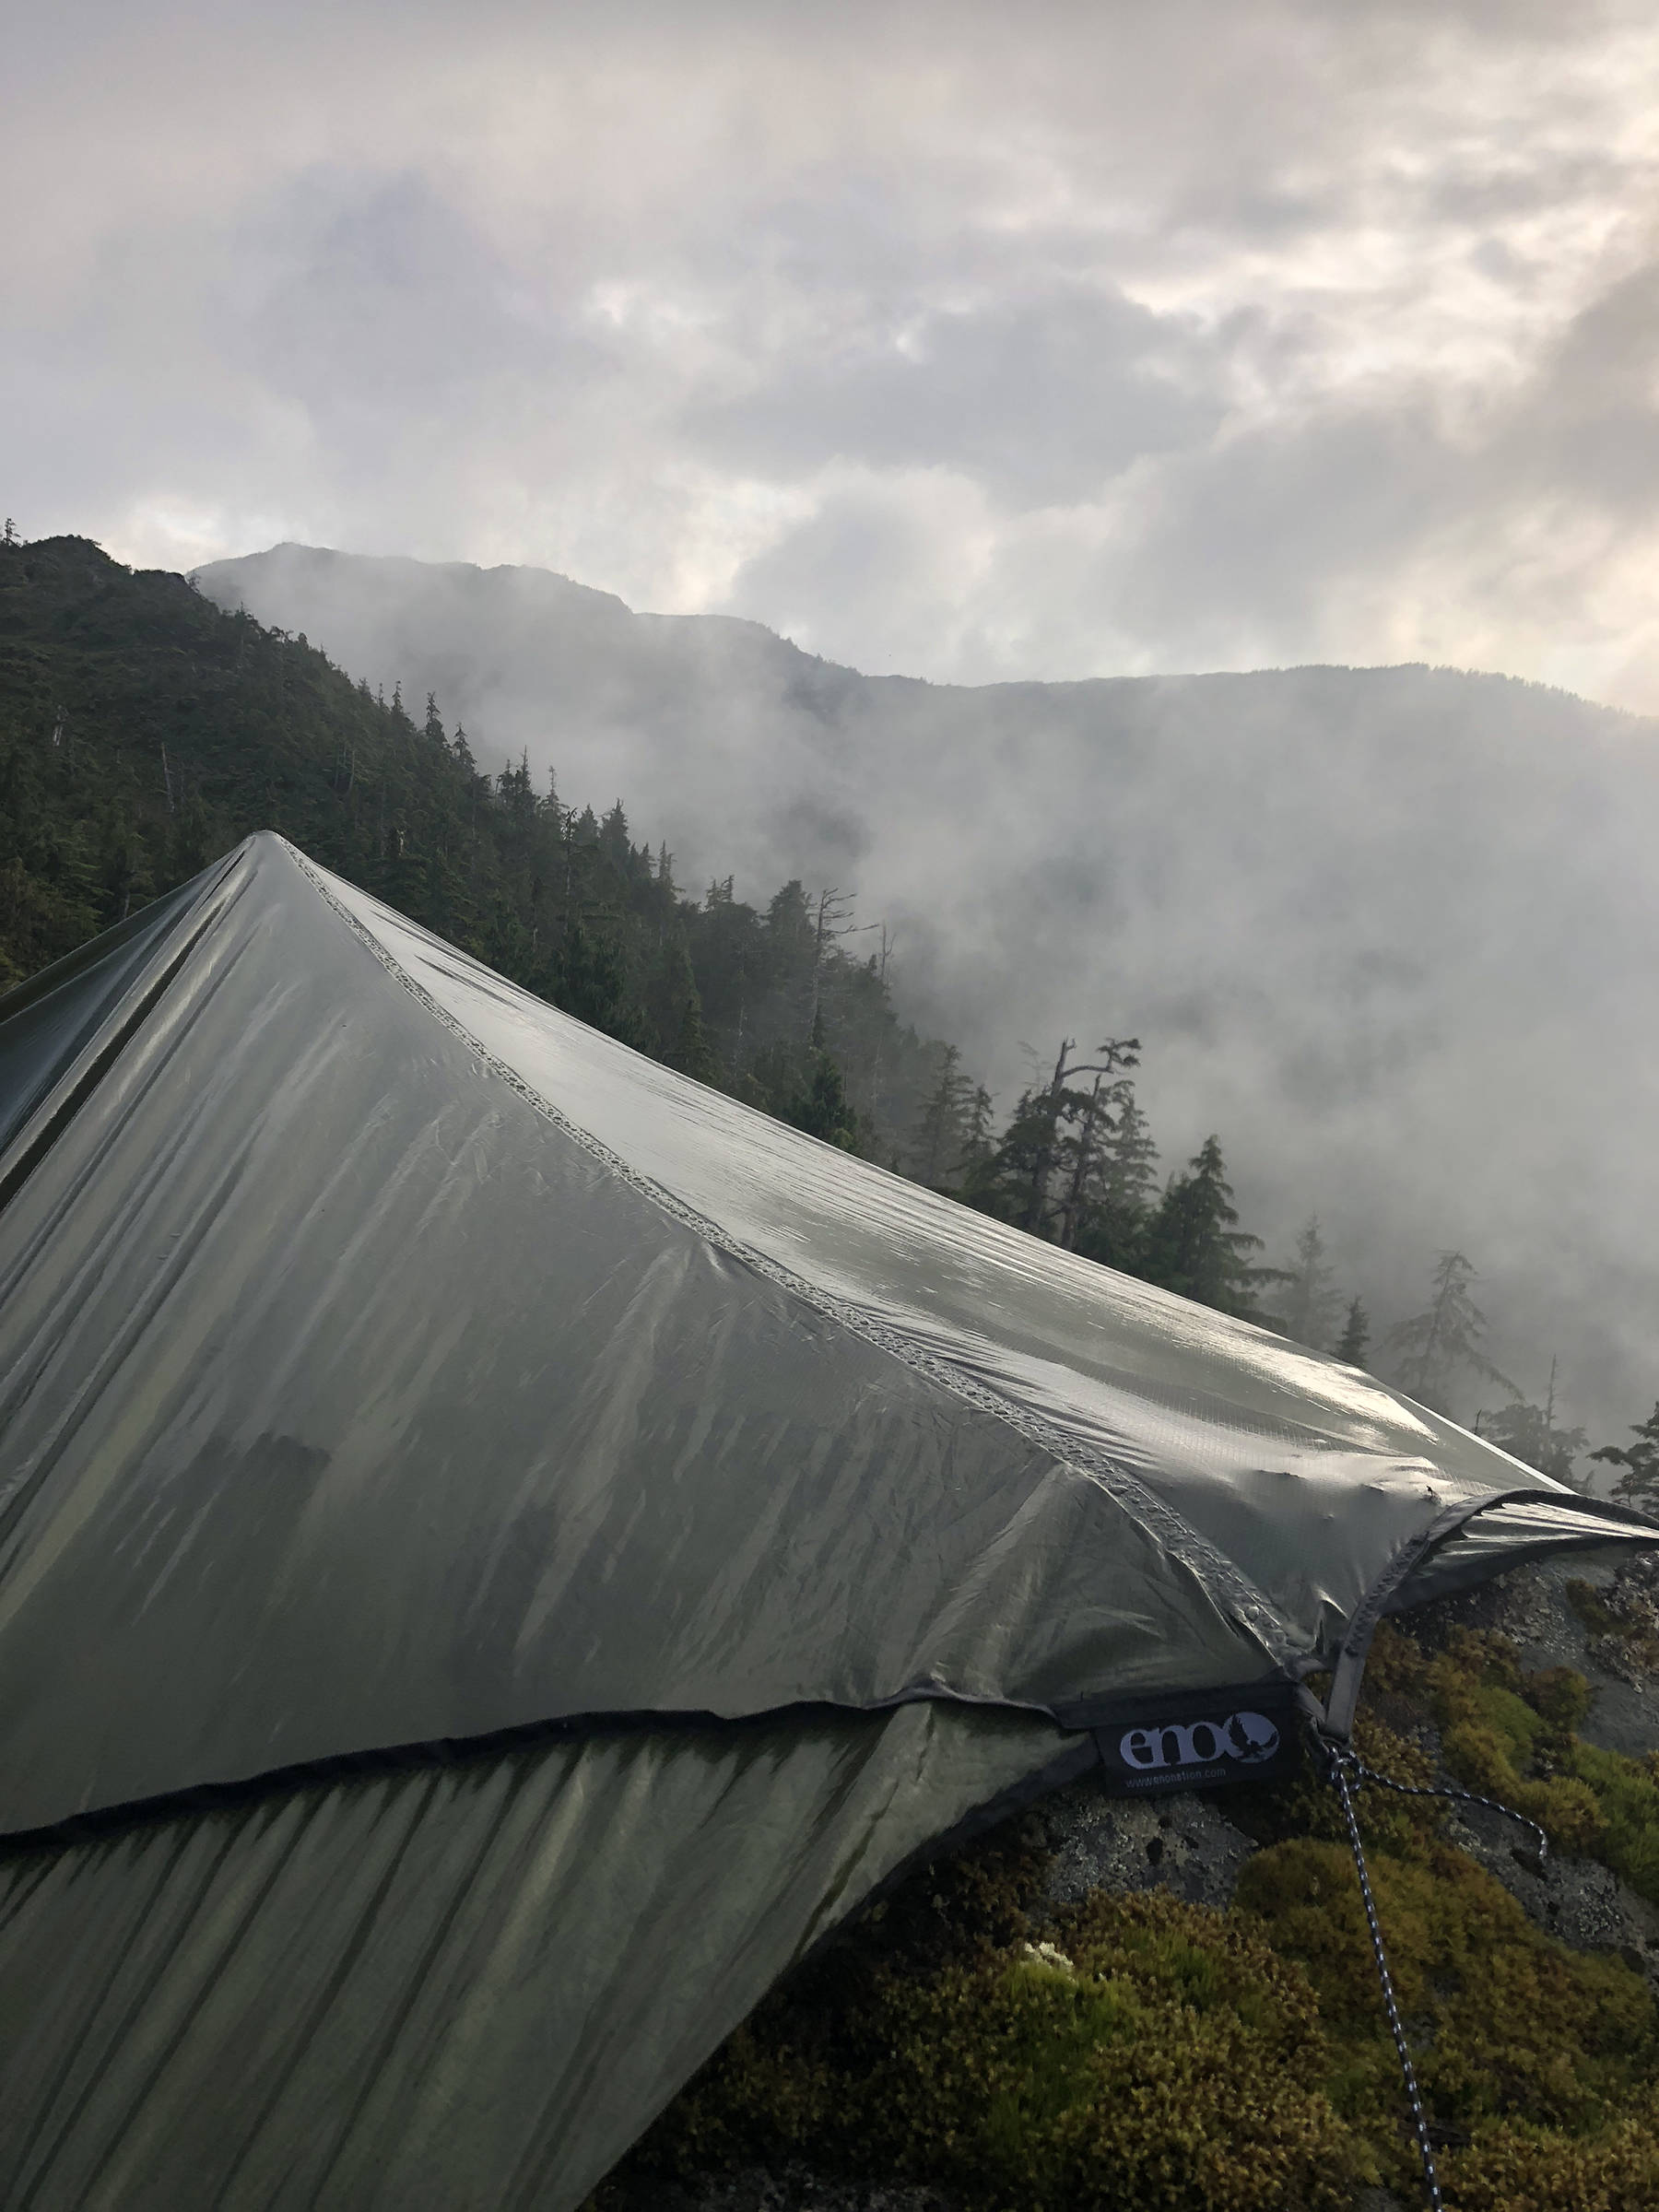 Was it fun to be stuck under a tarp during a rain storm? Yeah, in a way, writes the author. (Courtesy Photo | Jeff Lund)